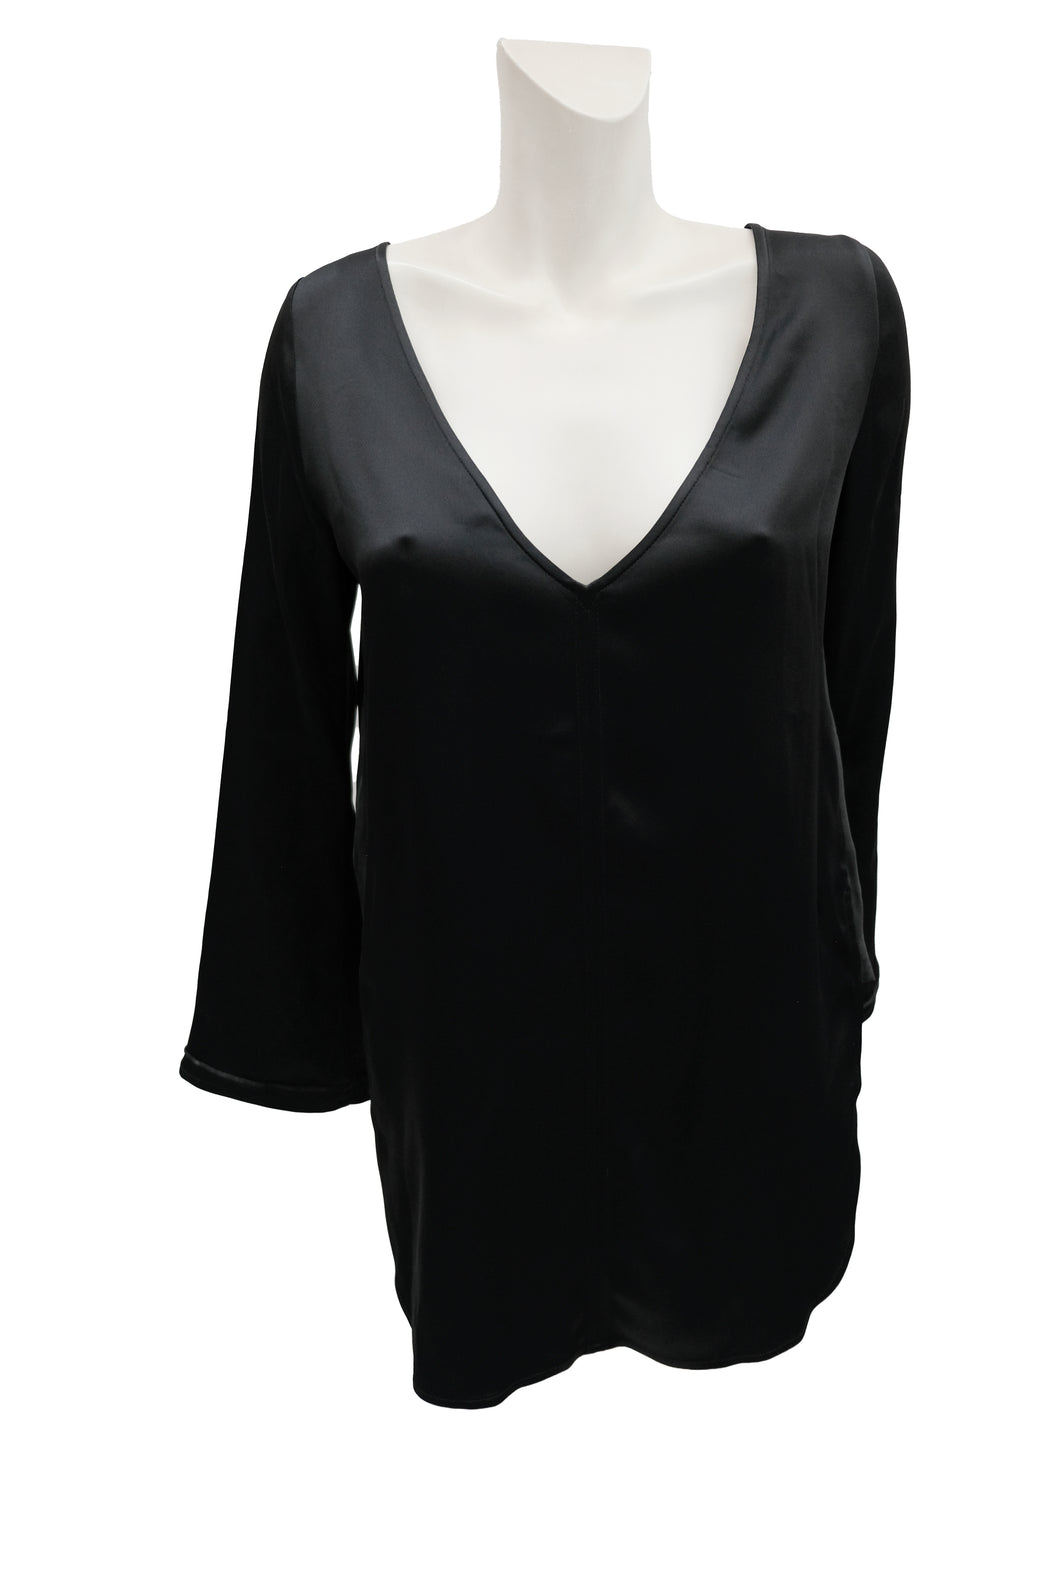 Khaite Black Satin V Neck Tunic Top, UK10